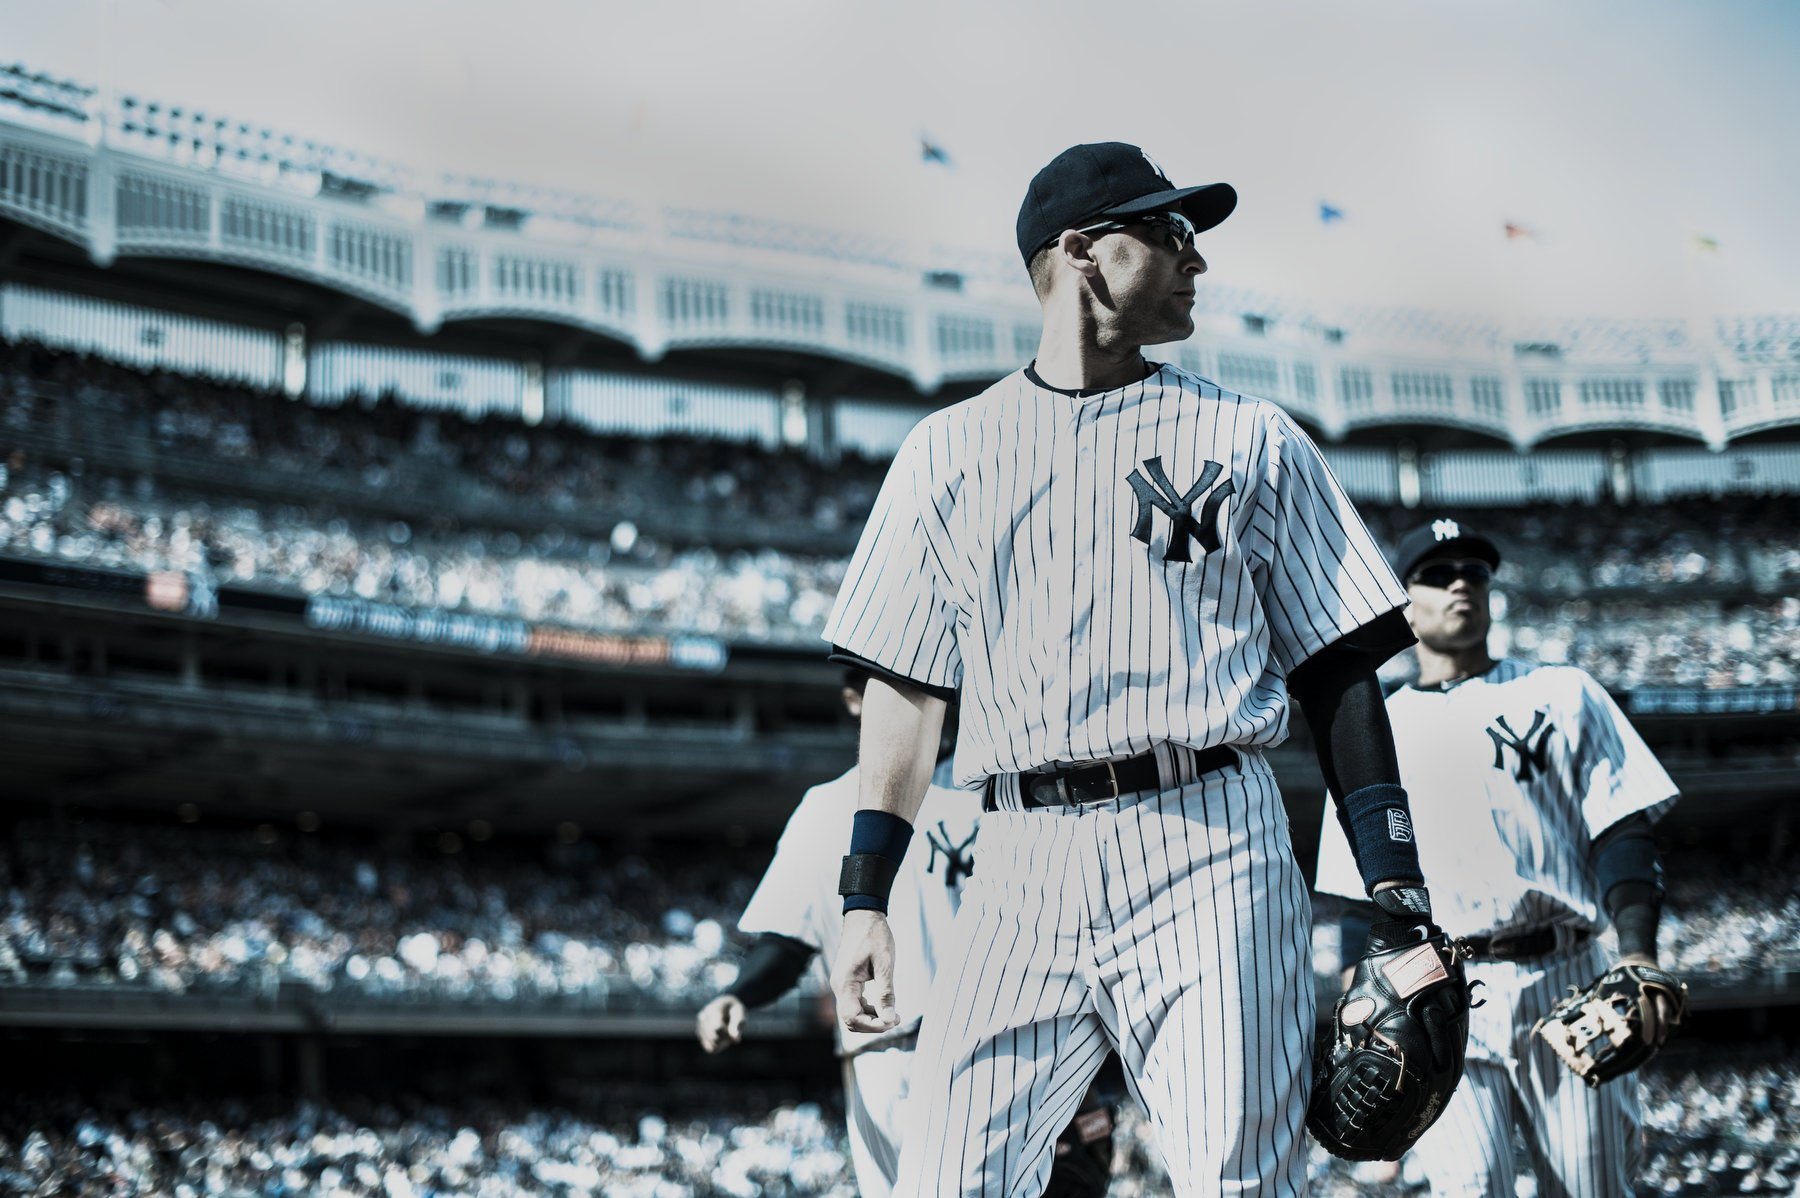 Yankees Iphone Wallpaper Hd 2012 Mlb Playoffs Wallpaper And Background Image